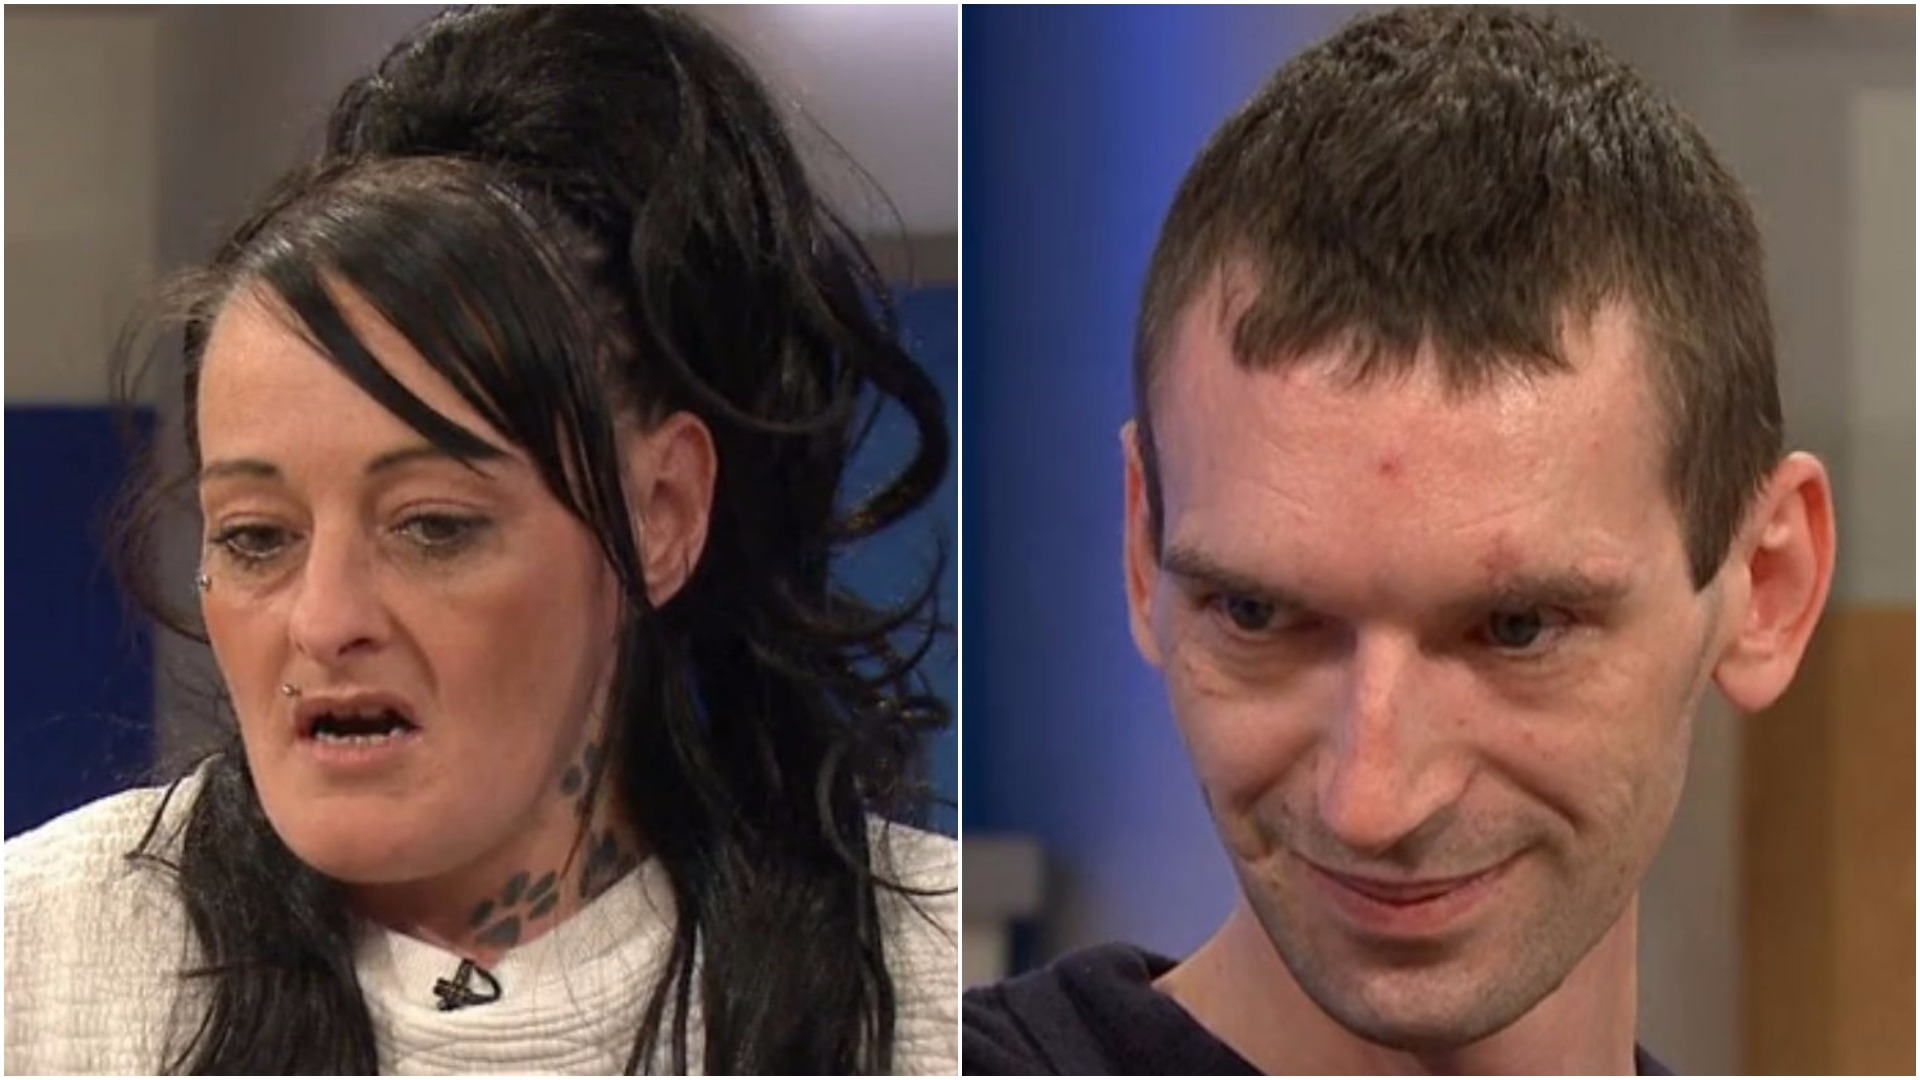 A newlywed couple who've been married for six days just went on The Jeremy Kyle Show to discuss cheating